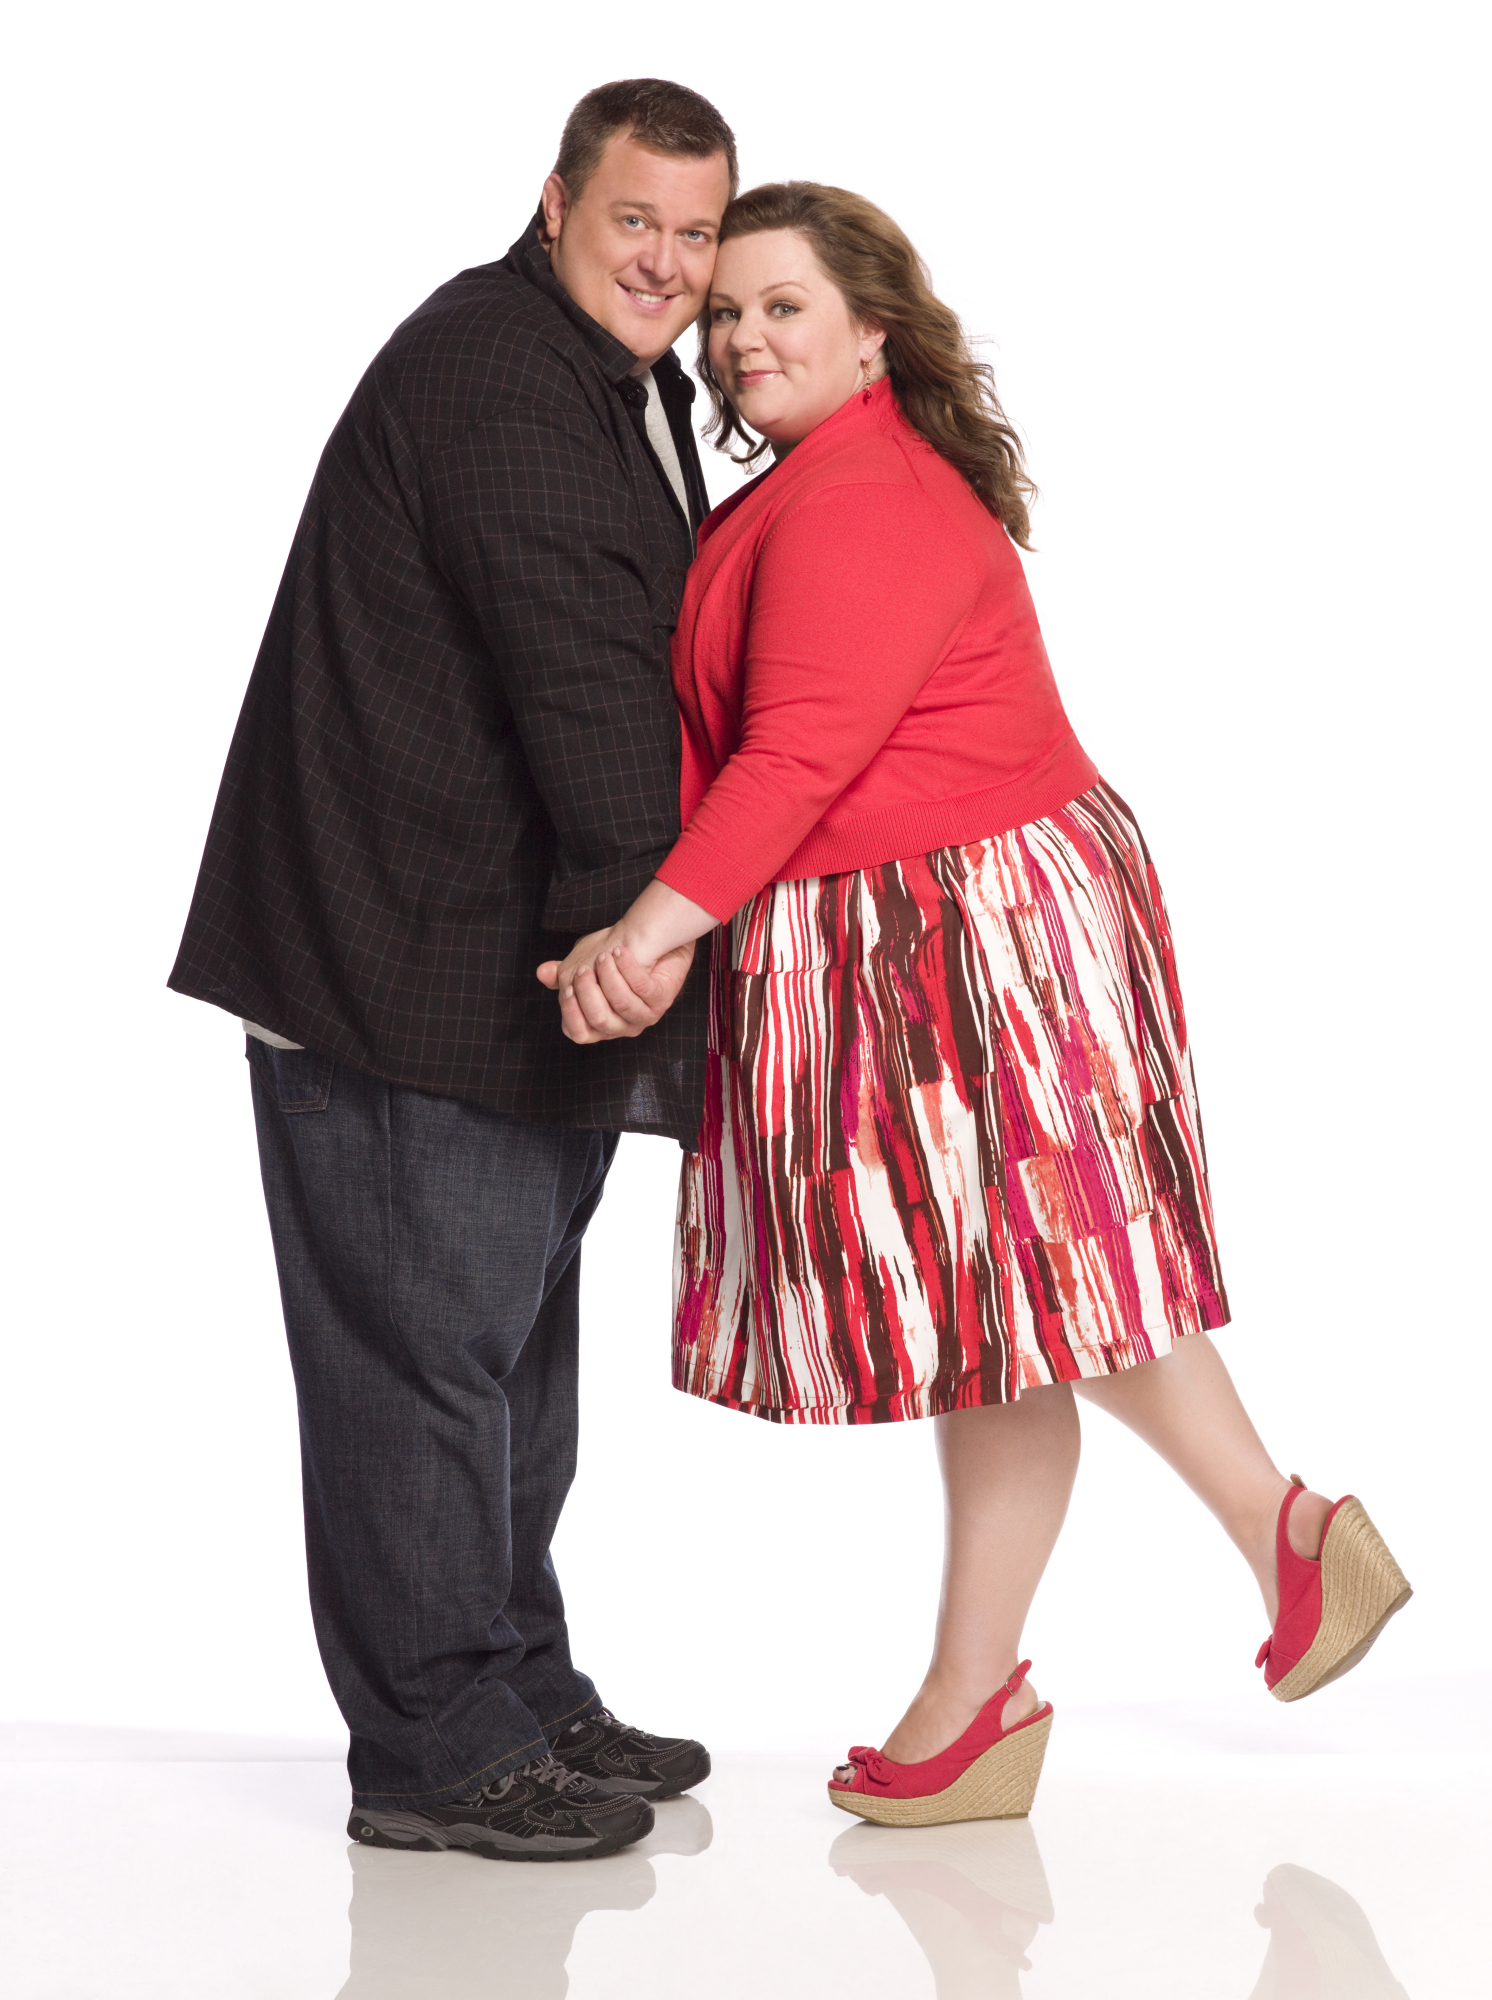 Mike & Molly Season 2 Episode 13 - CBS com